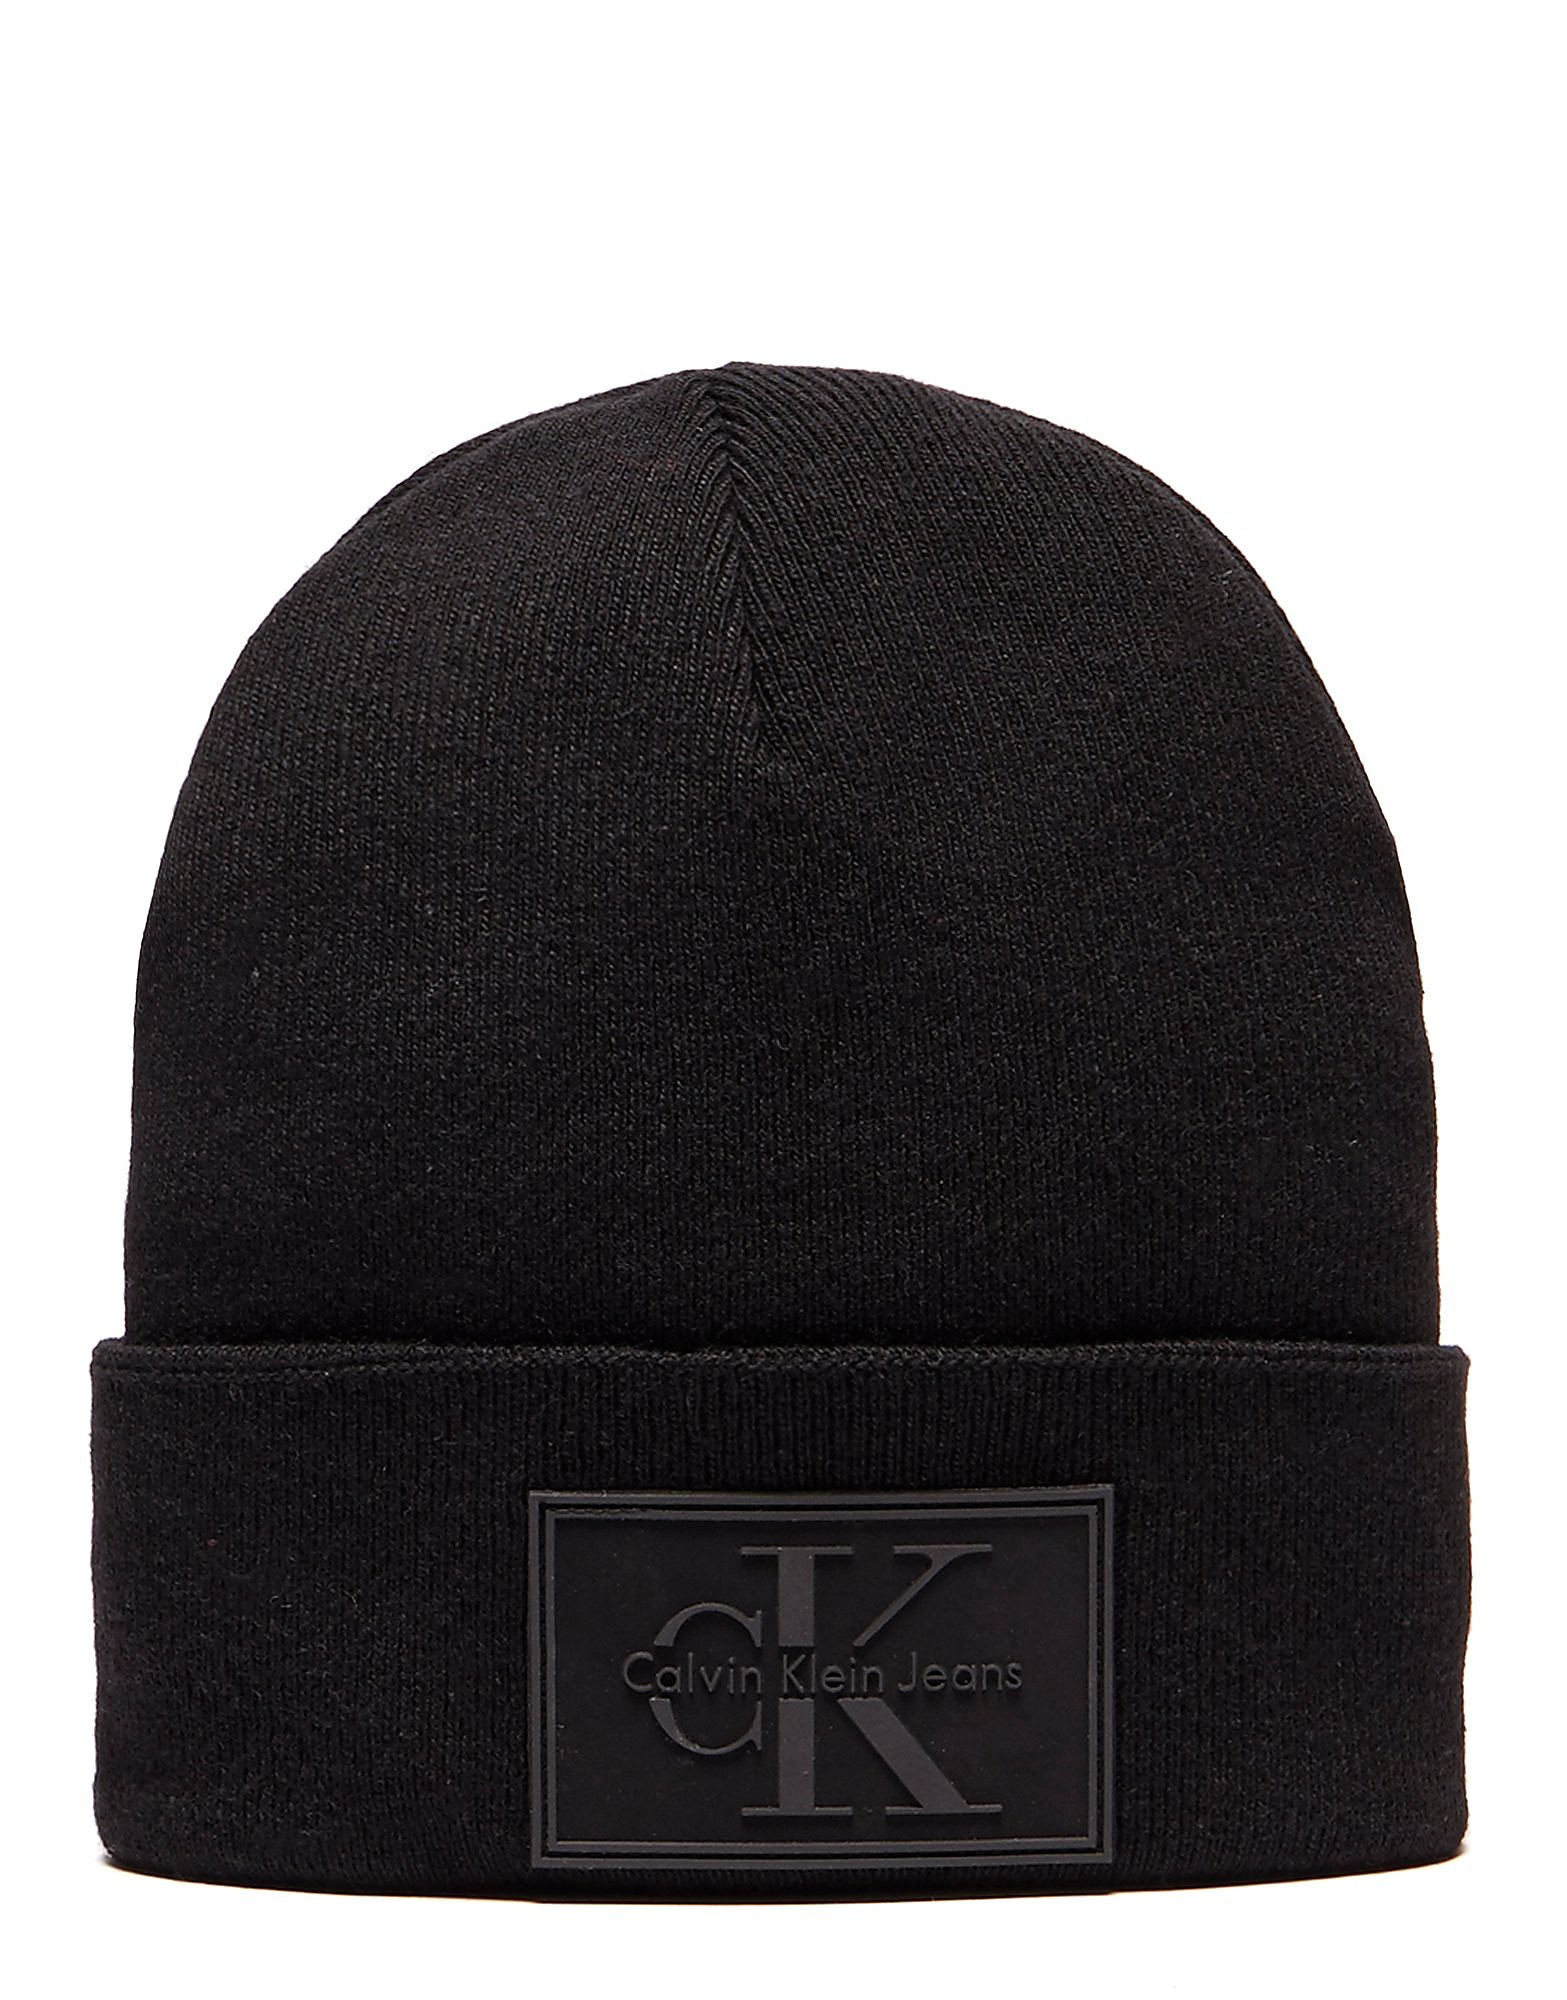 Calvin Klein Re-Issue Beanie